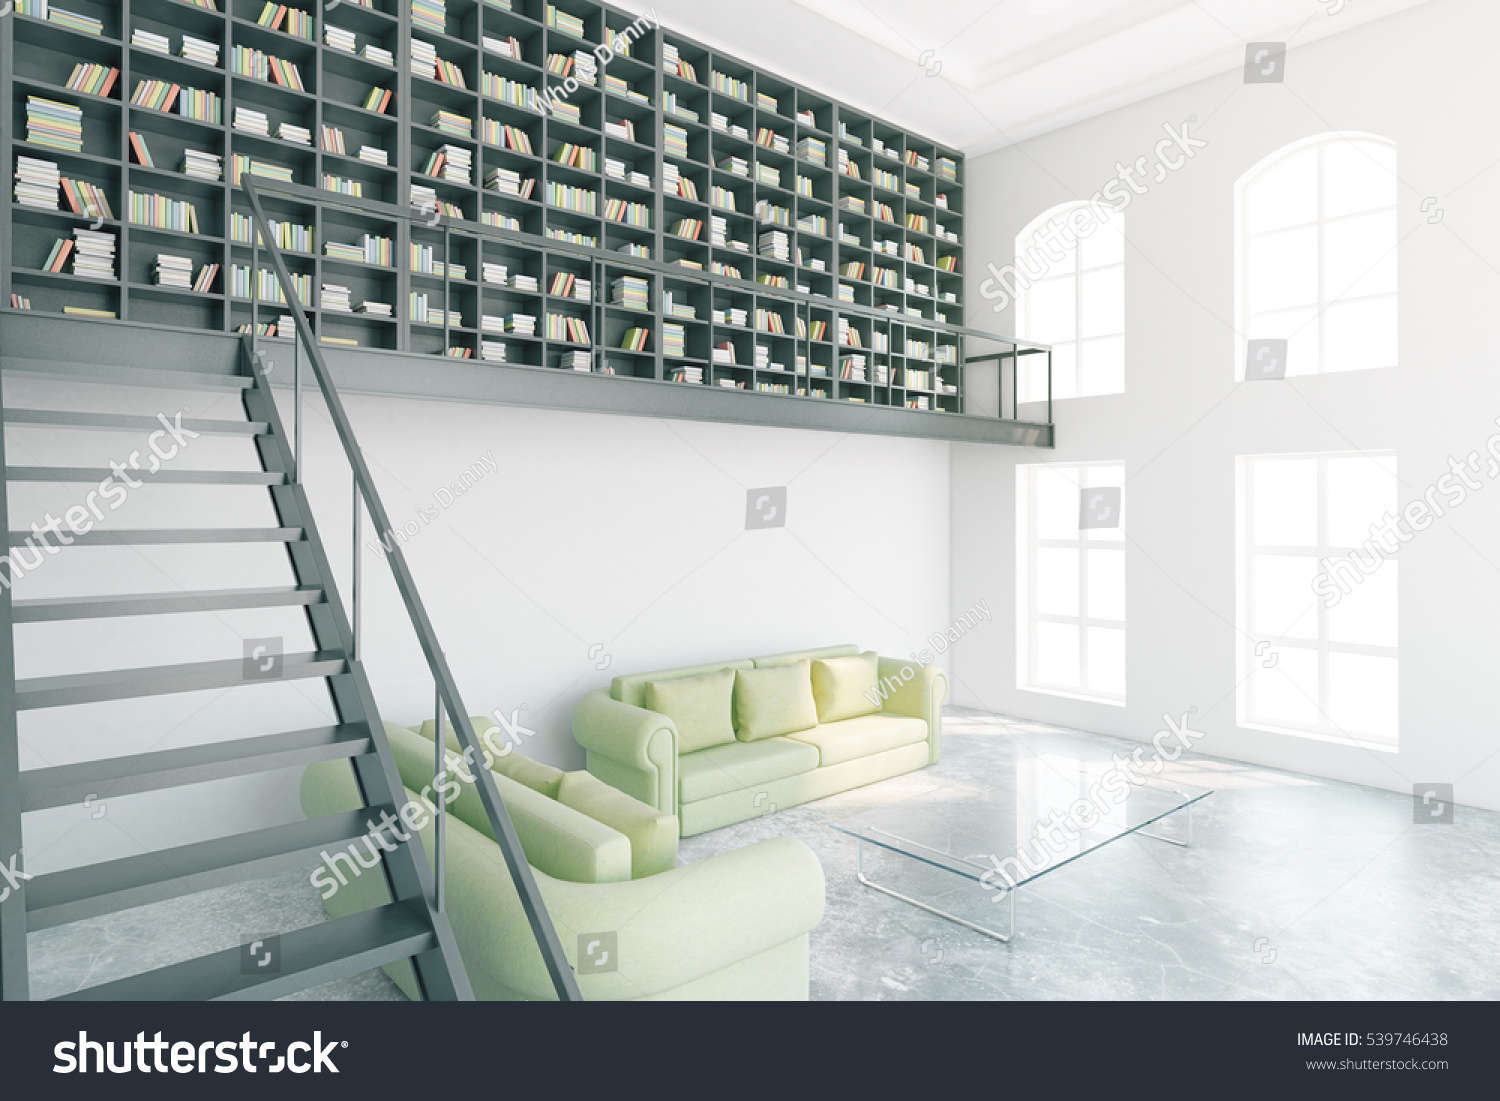 modern library furniture. Modern Library Interior Bookcase Stairs Light Stock Illustration 539746438 - Shutterstock Furniture I